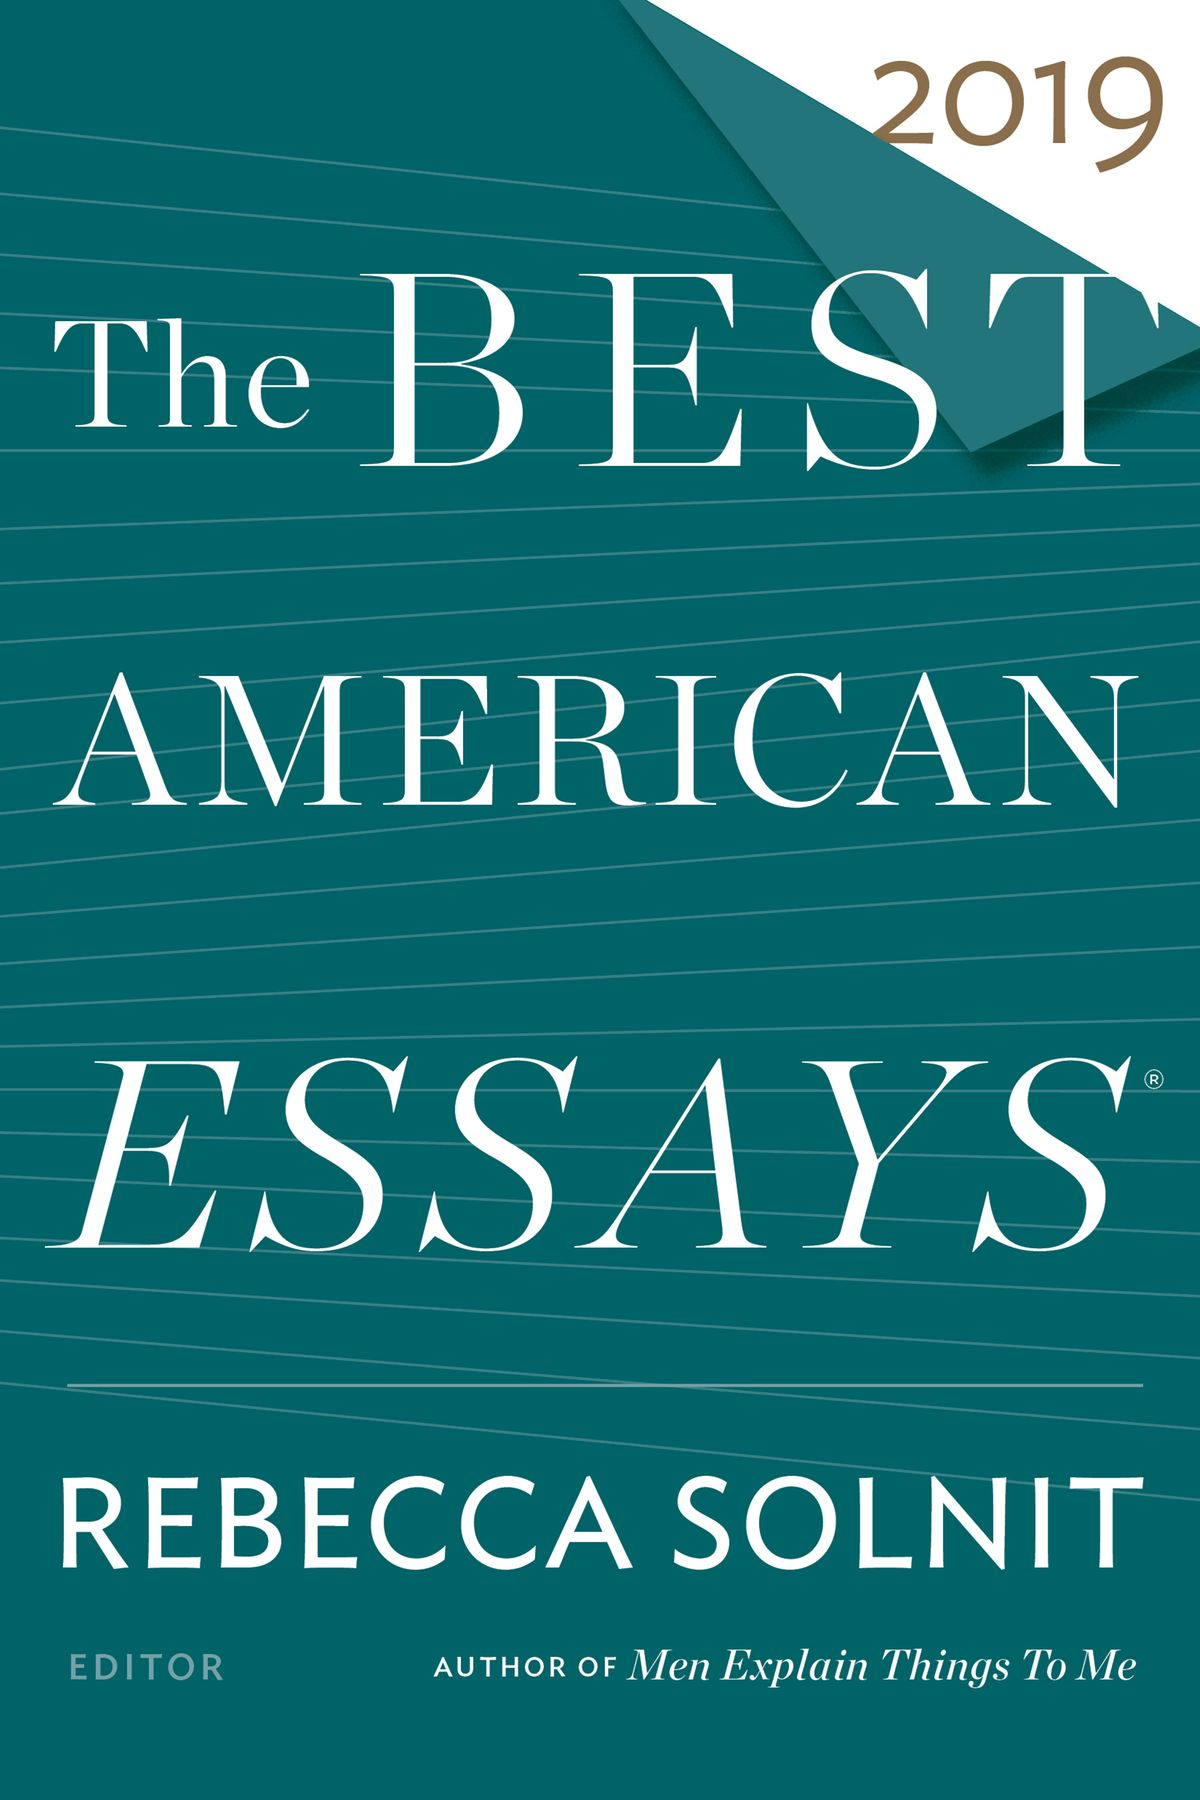 007 The Best American Essays Essay Wonderful Of Century Table Contents 2013 Pdf Download Full